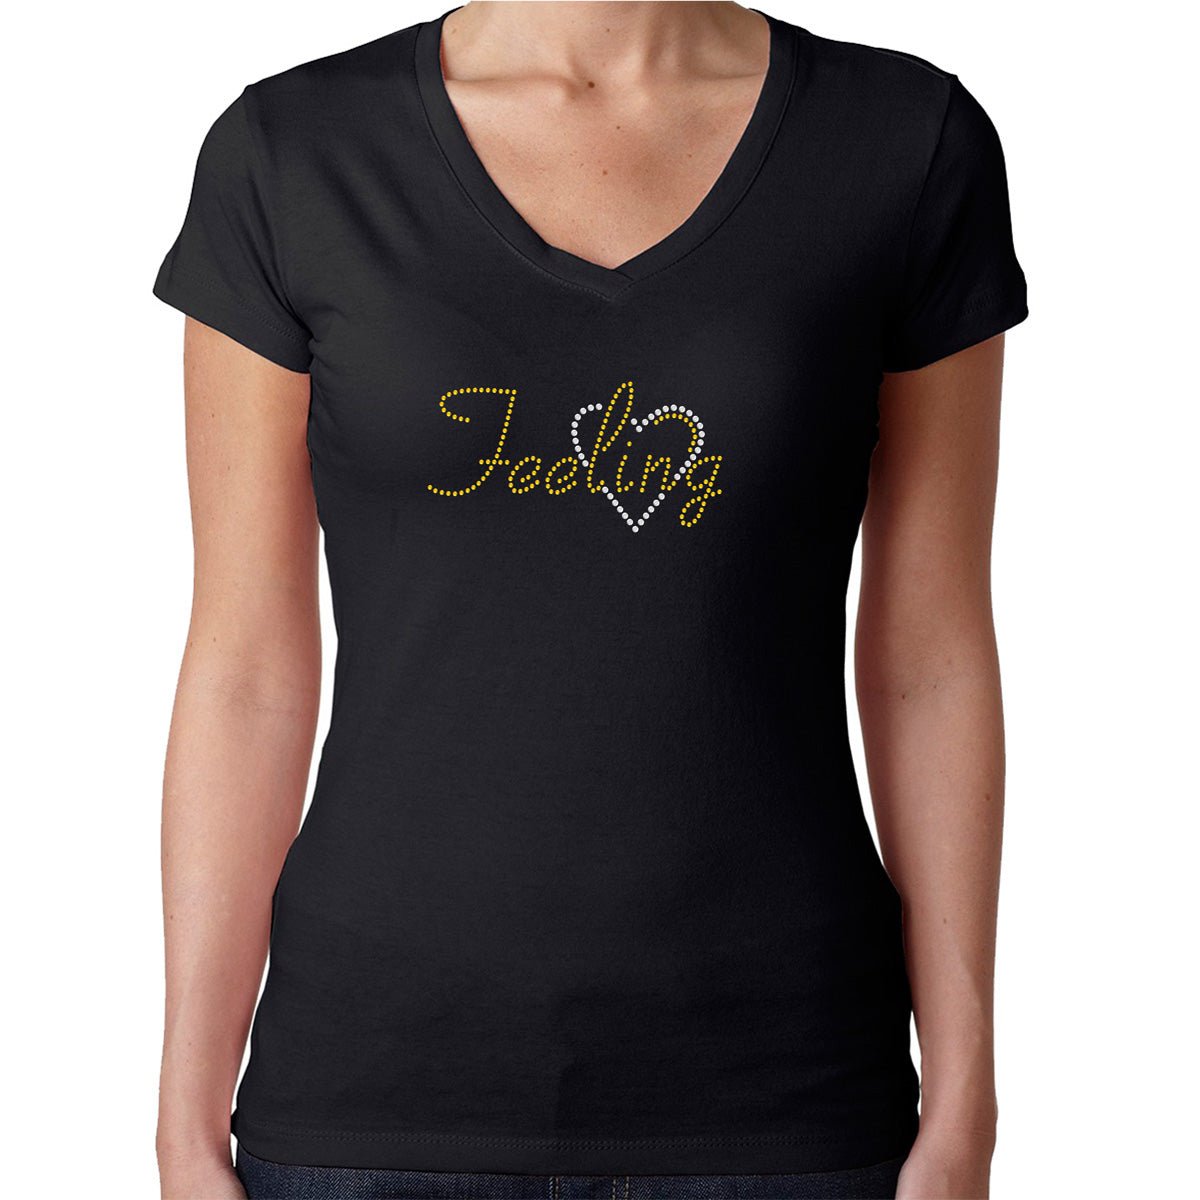 Womens T-Shirt Rhinestone Bling Black Fitted Tee Feeling Heart Sparkle